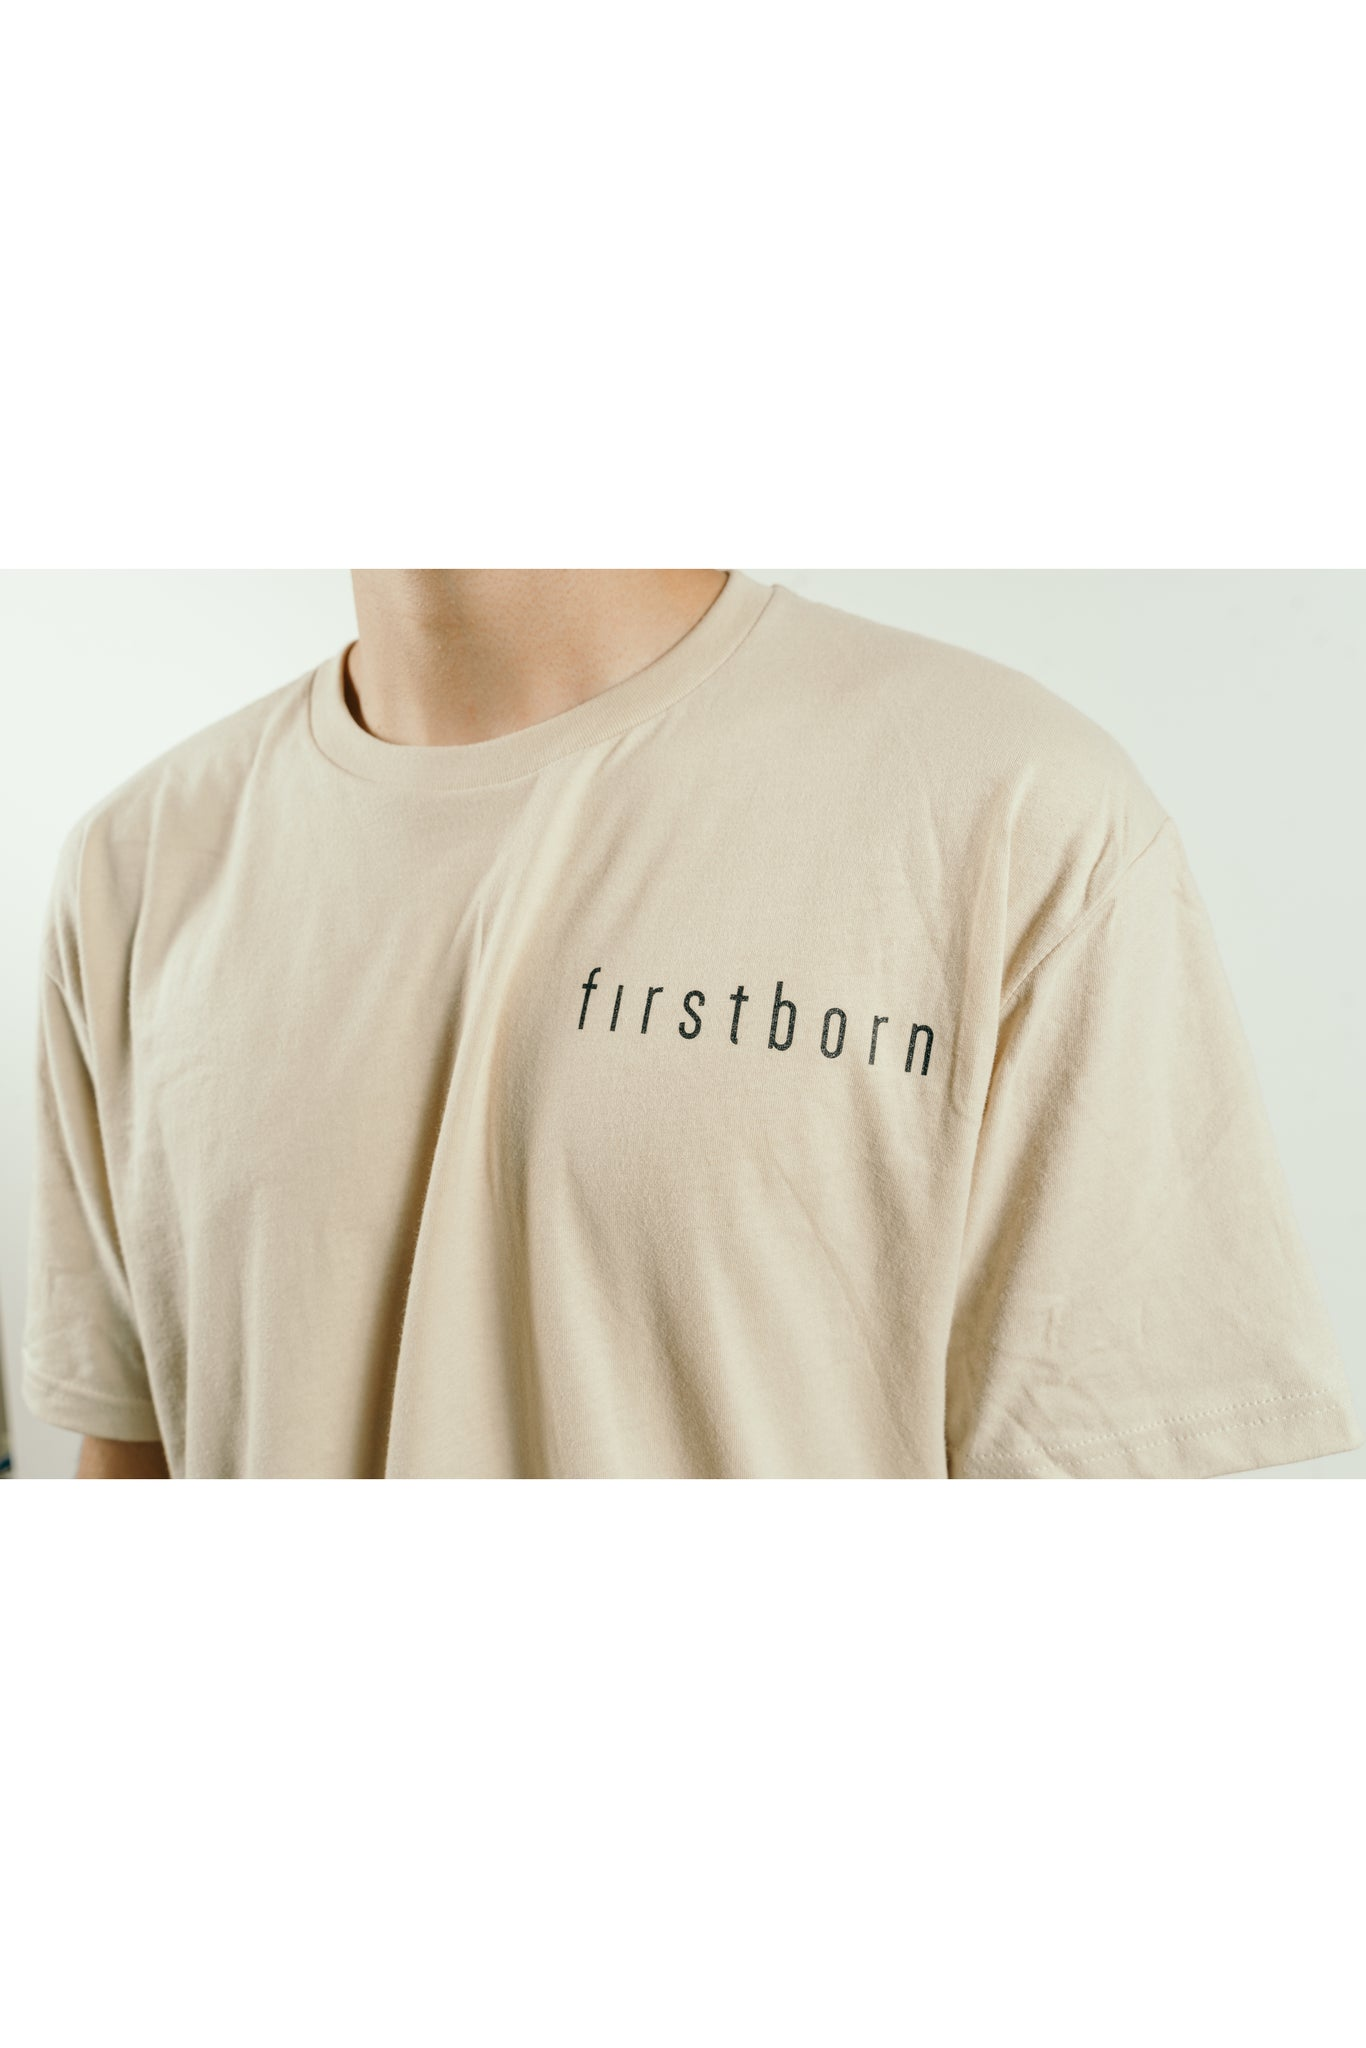 FIRSTBORN T-SHIRT